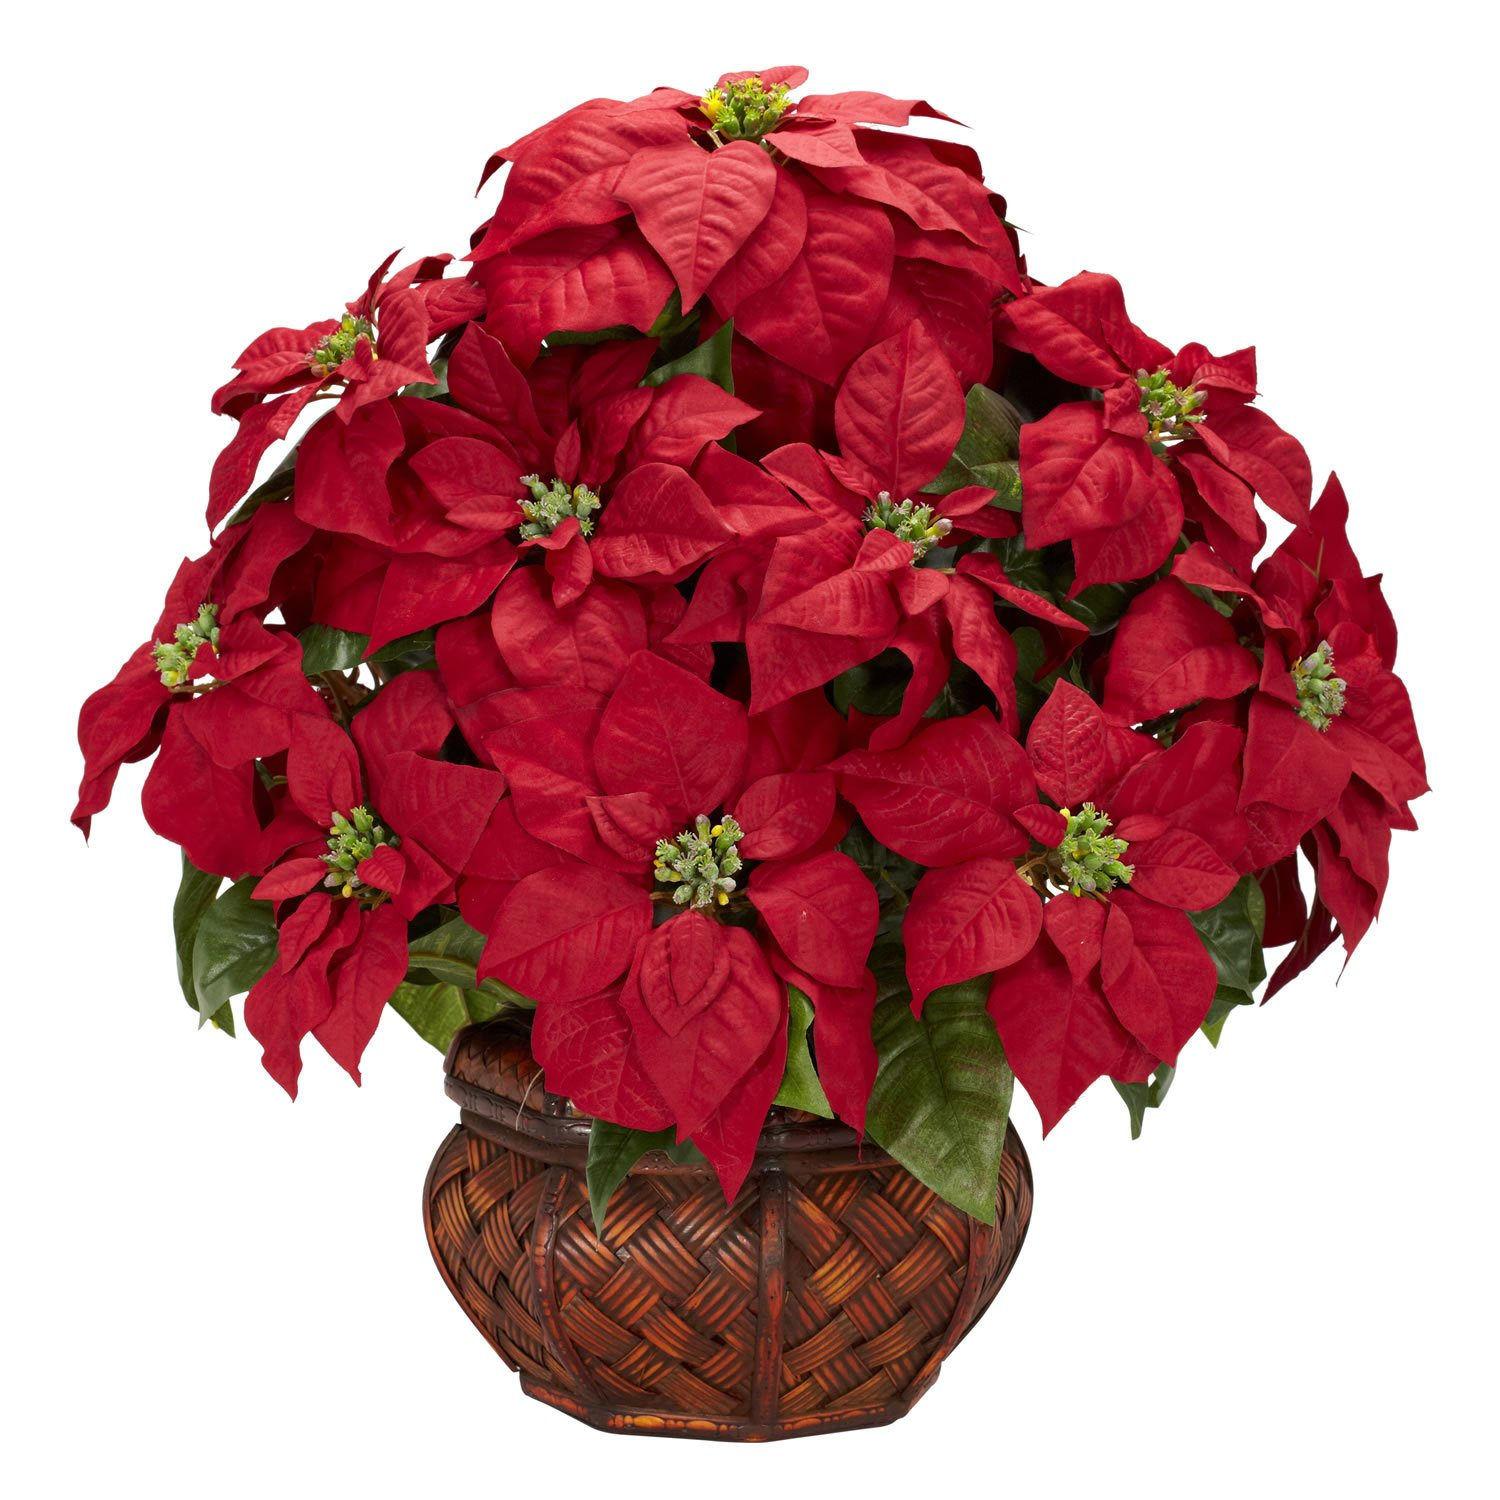 Artificial poinsettia arrangements christmas wikii for Poinsettia arrangements